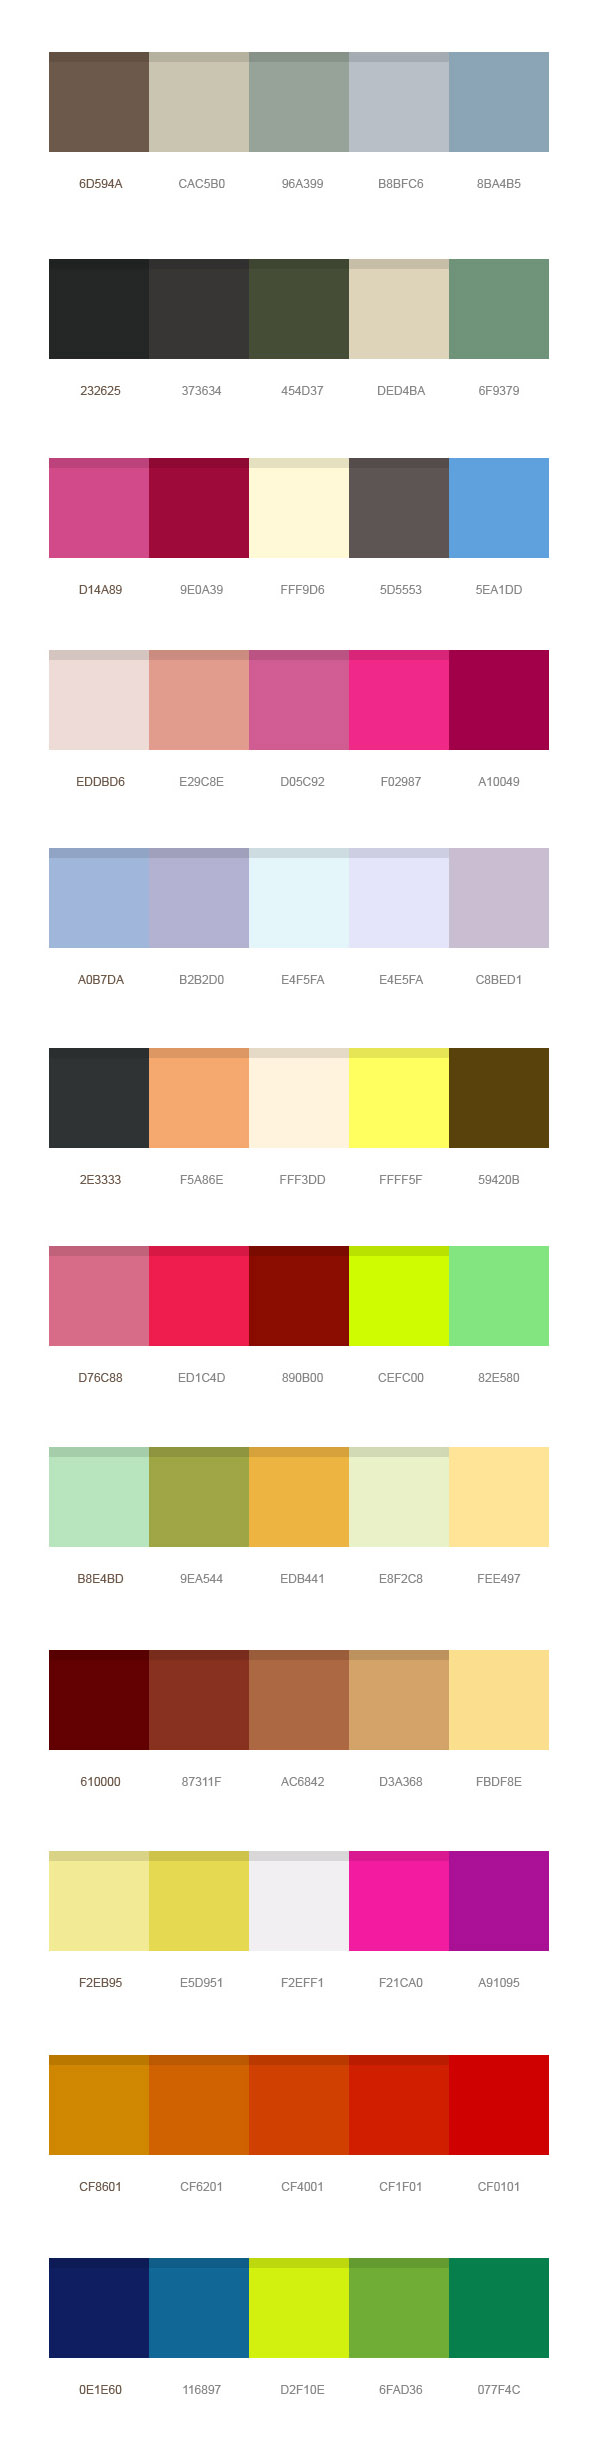 12 beautiful color palettes (PSD)